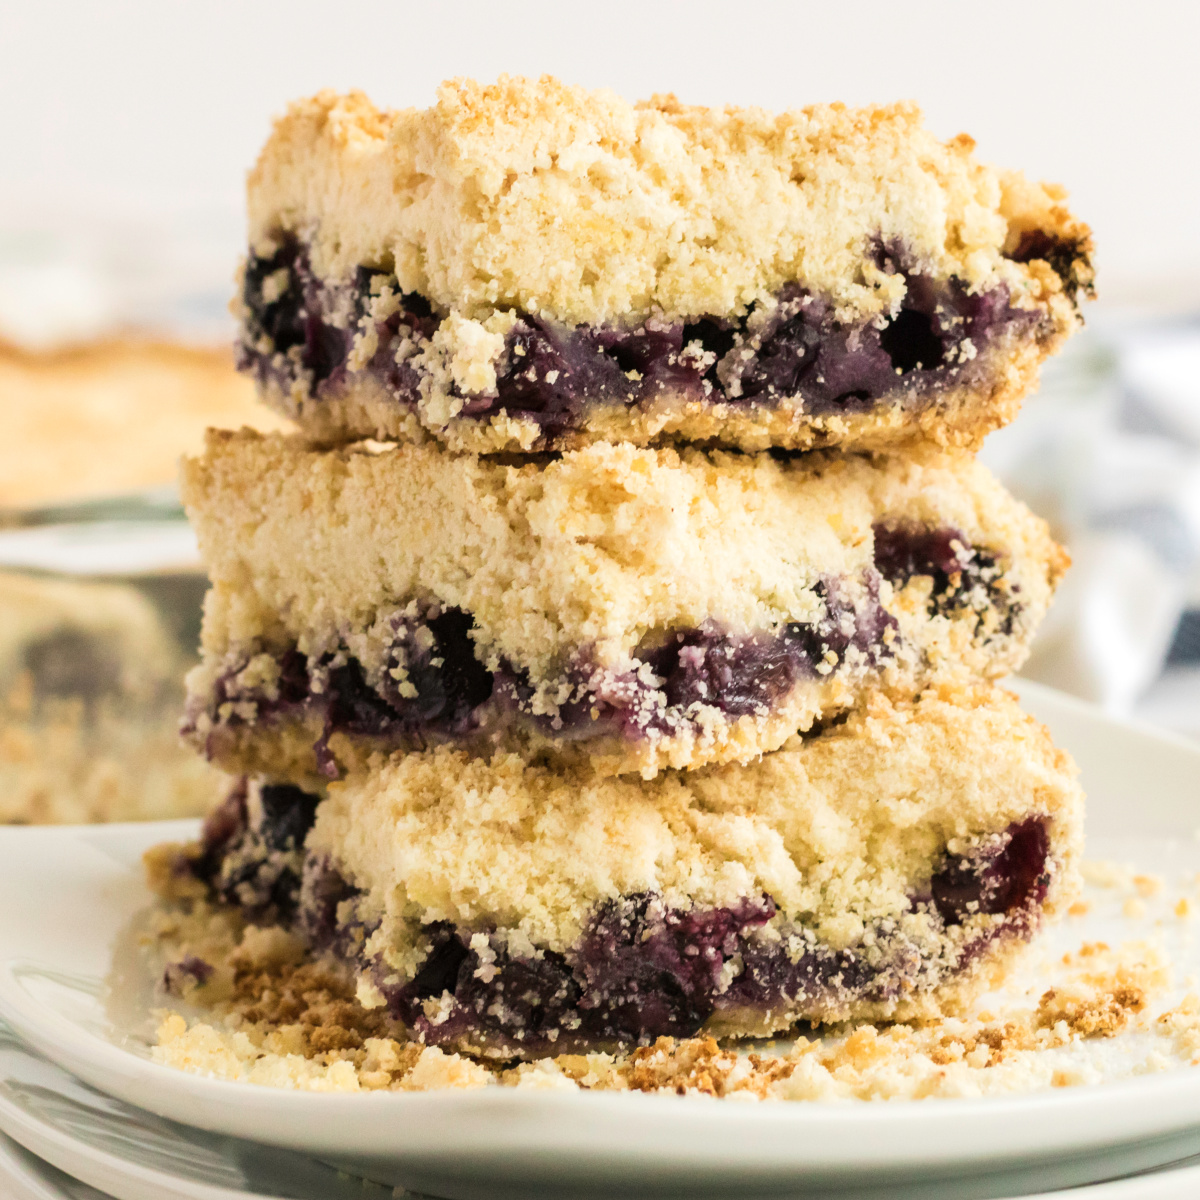 Blueberry crumb bars stacked on a plate and ready to eat.